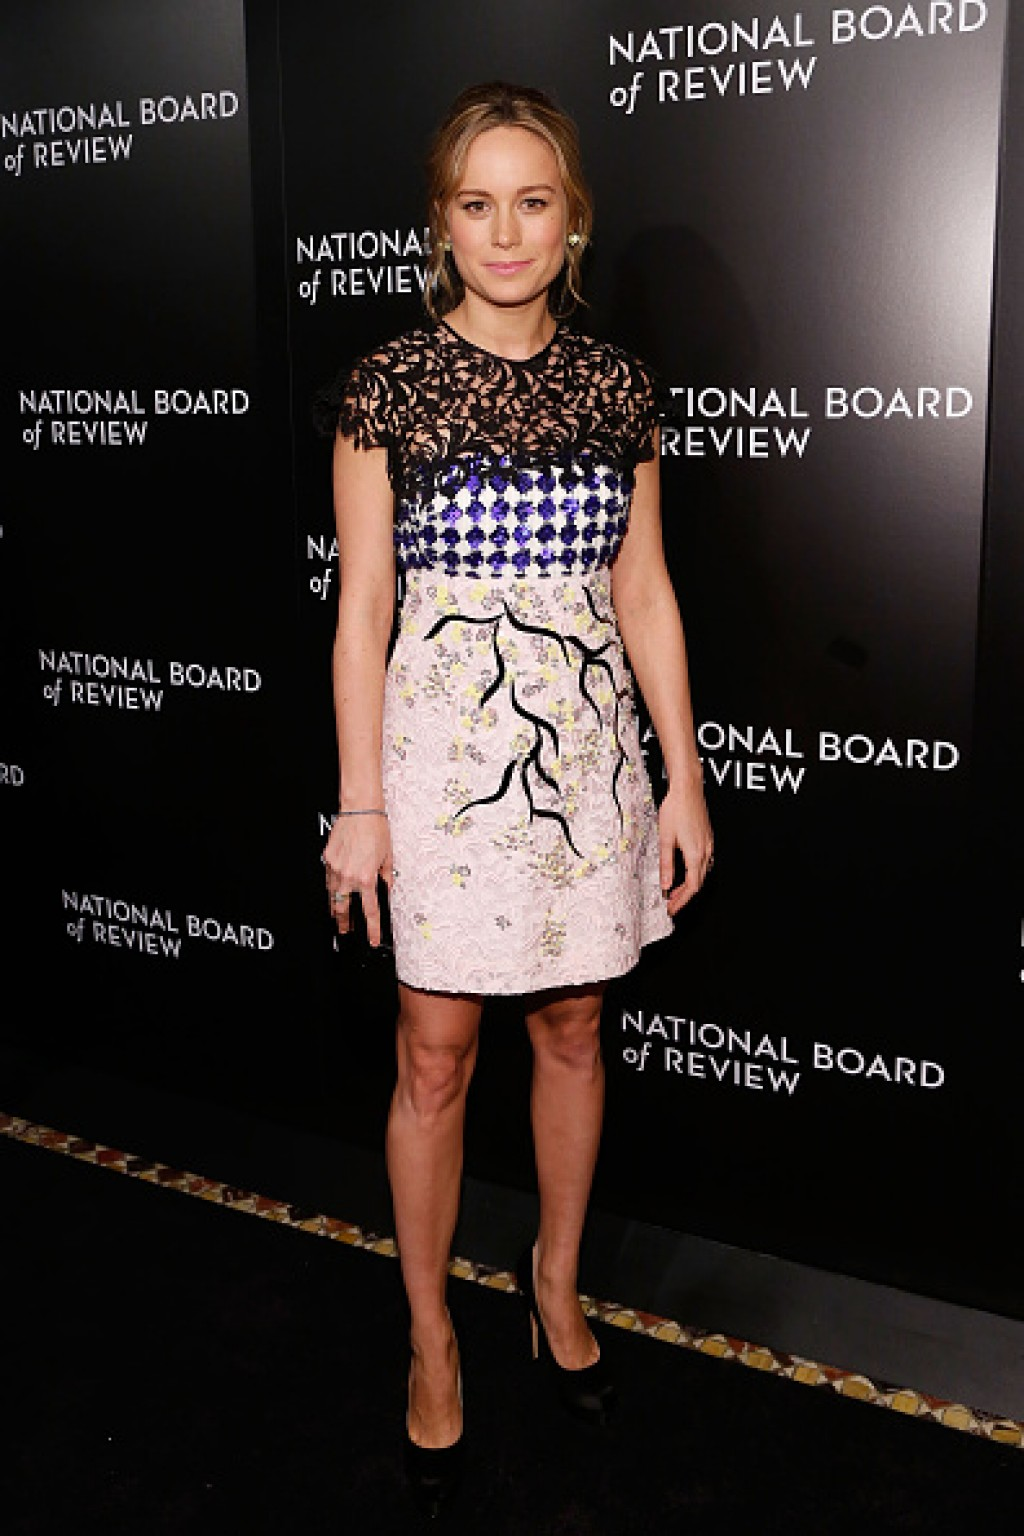 2016-National-Board-of-Review-Gala-Dress-2016-1024x1536